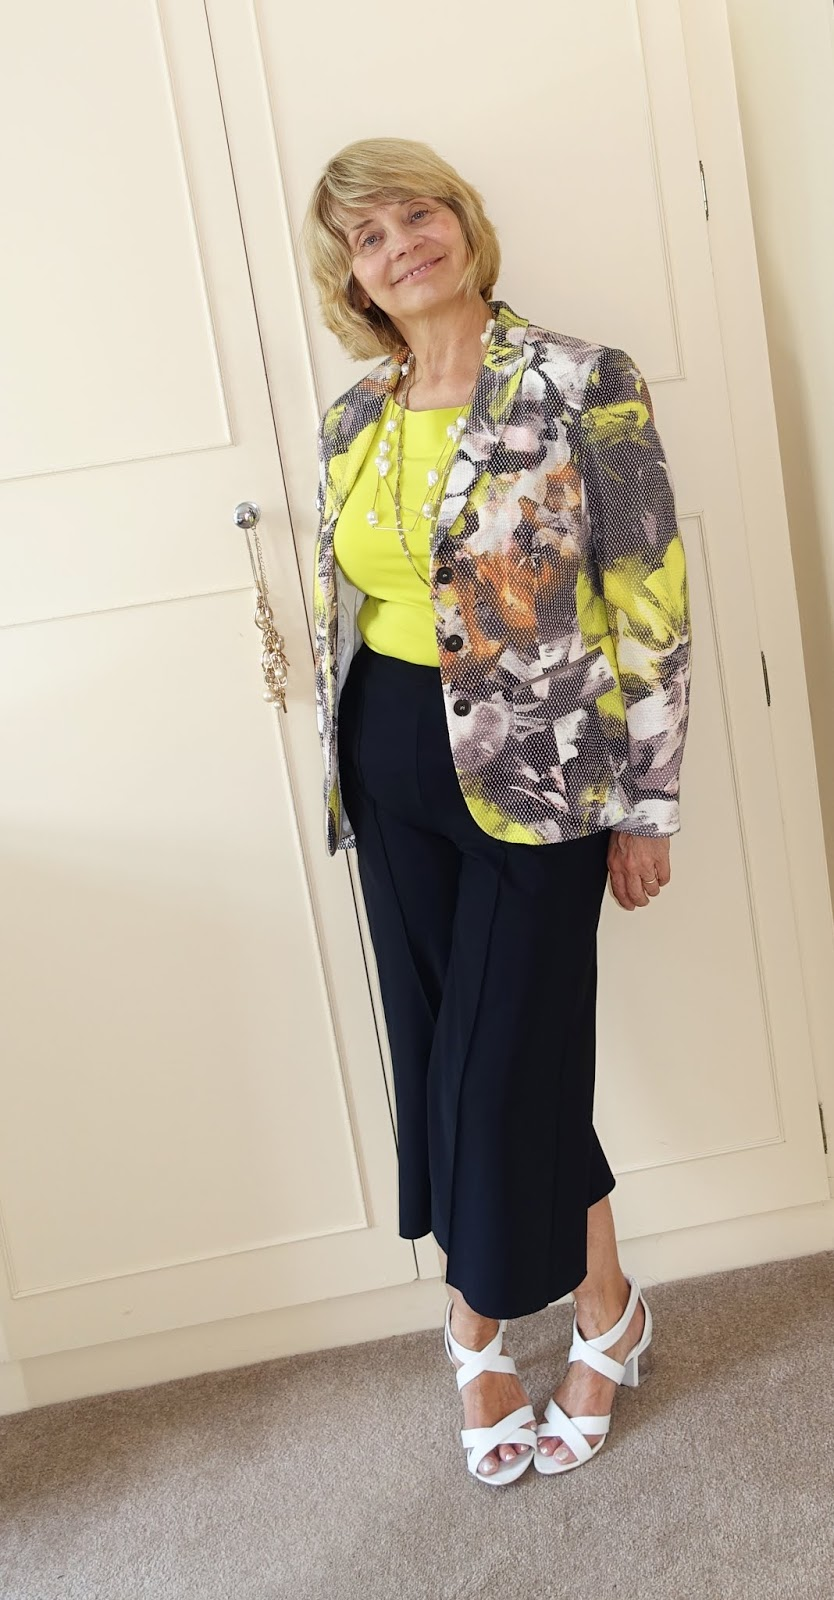 Zingy summer number - lime green top, patterned jacket and black cropped trousers